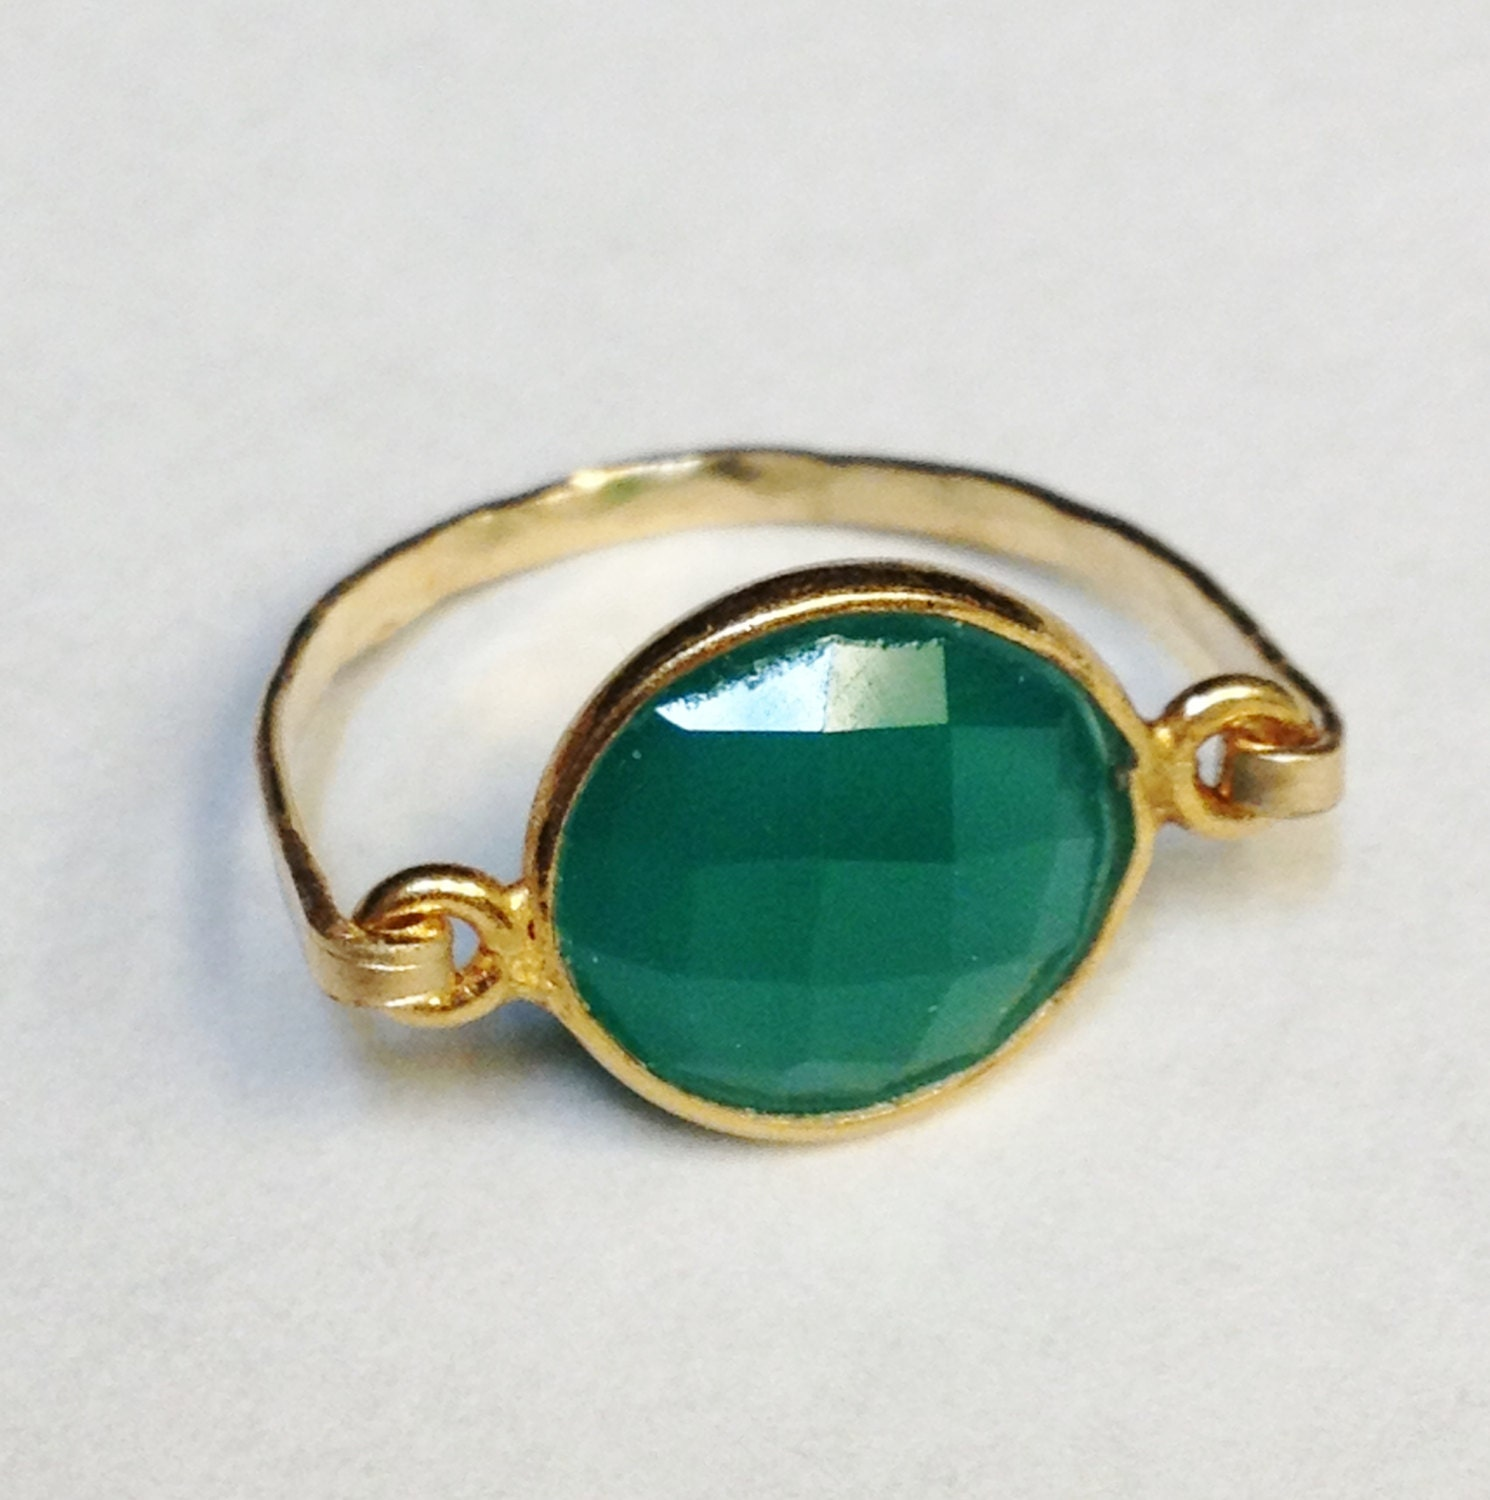 Green Onyx Ring Green Onyx Gemstone Ring 14k By. Expensive Wedding Rings. Natural Opal Engagement Rings. Adjustable Wedding Rings. Mens Macys Wedding Rings. Flowery Wedding Rings. Wood Veneer Engagement Rings. Mason Jar Rings. The Flash Rings